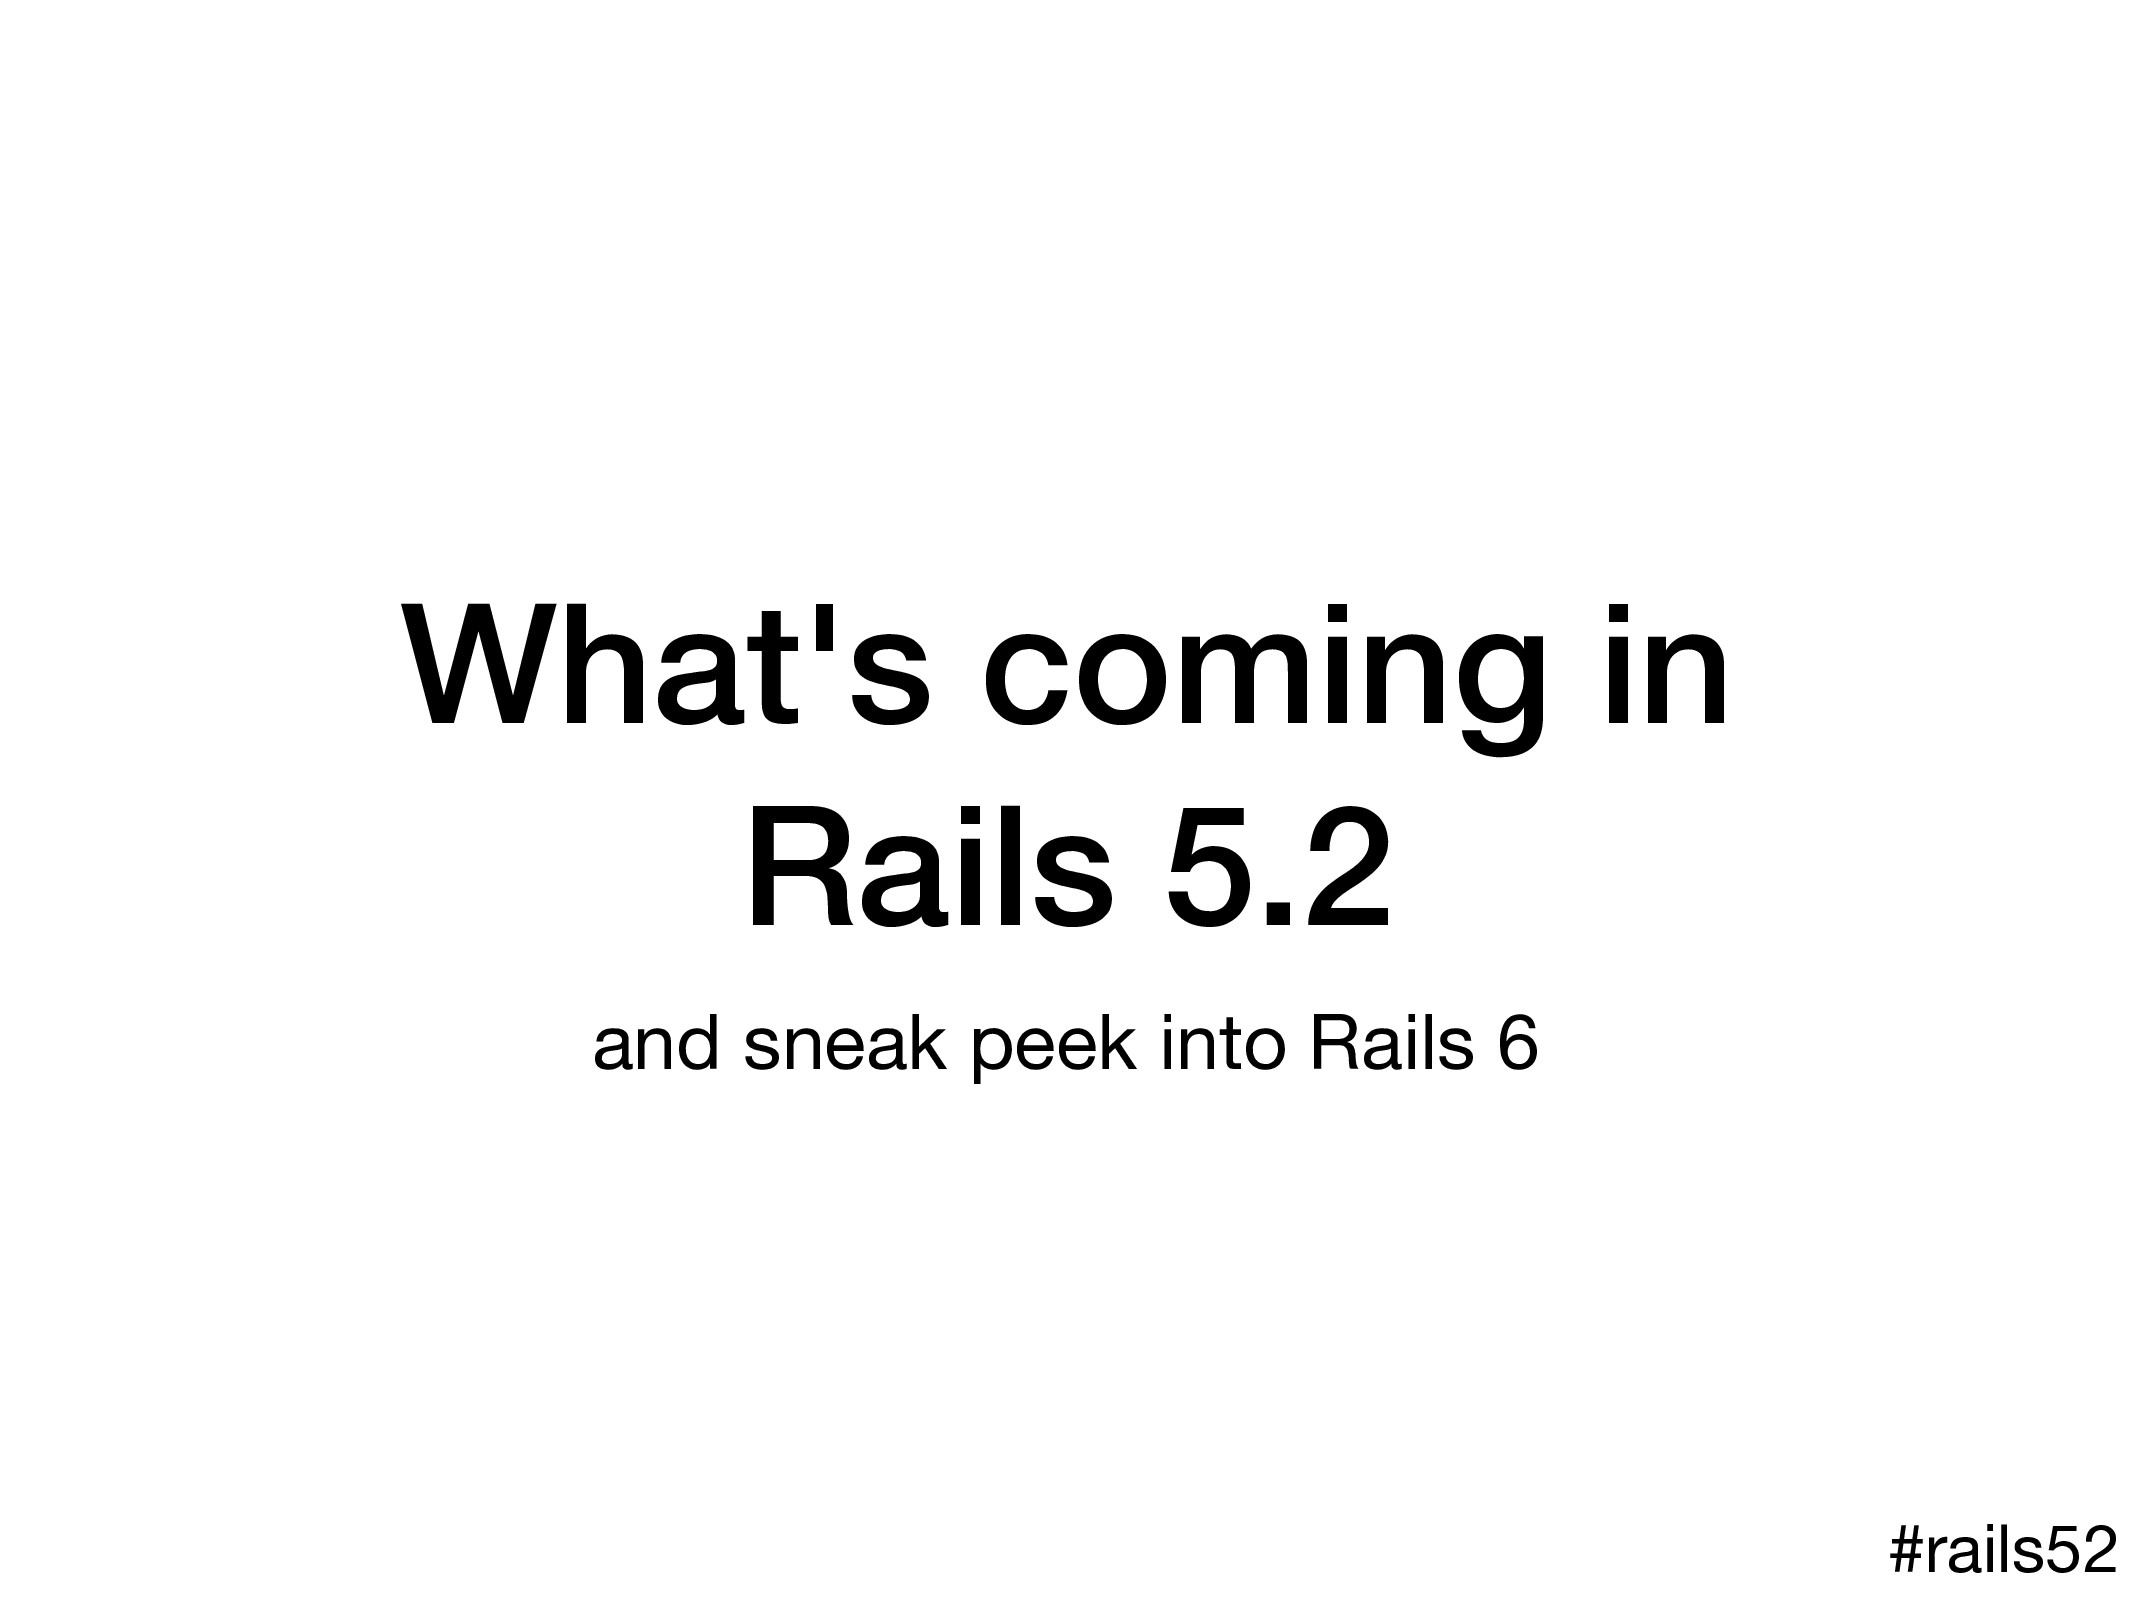 What's coming in Rails 5.2 and sneak peek into ...